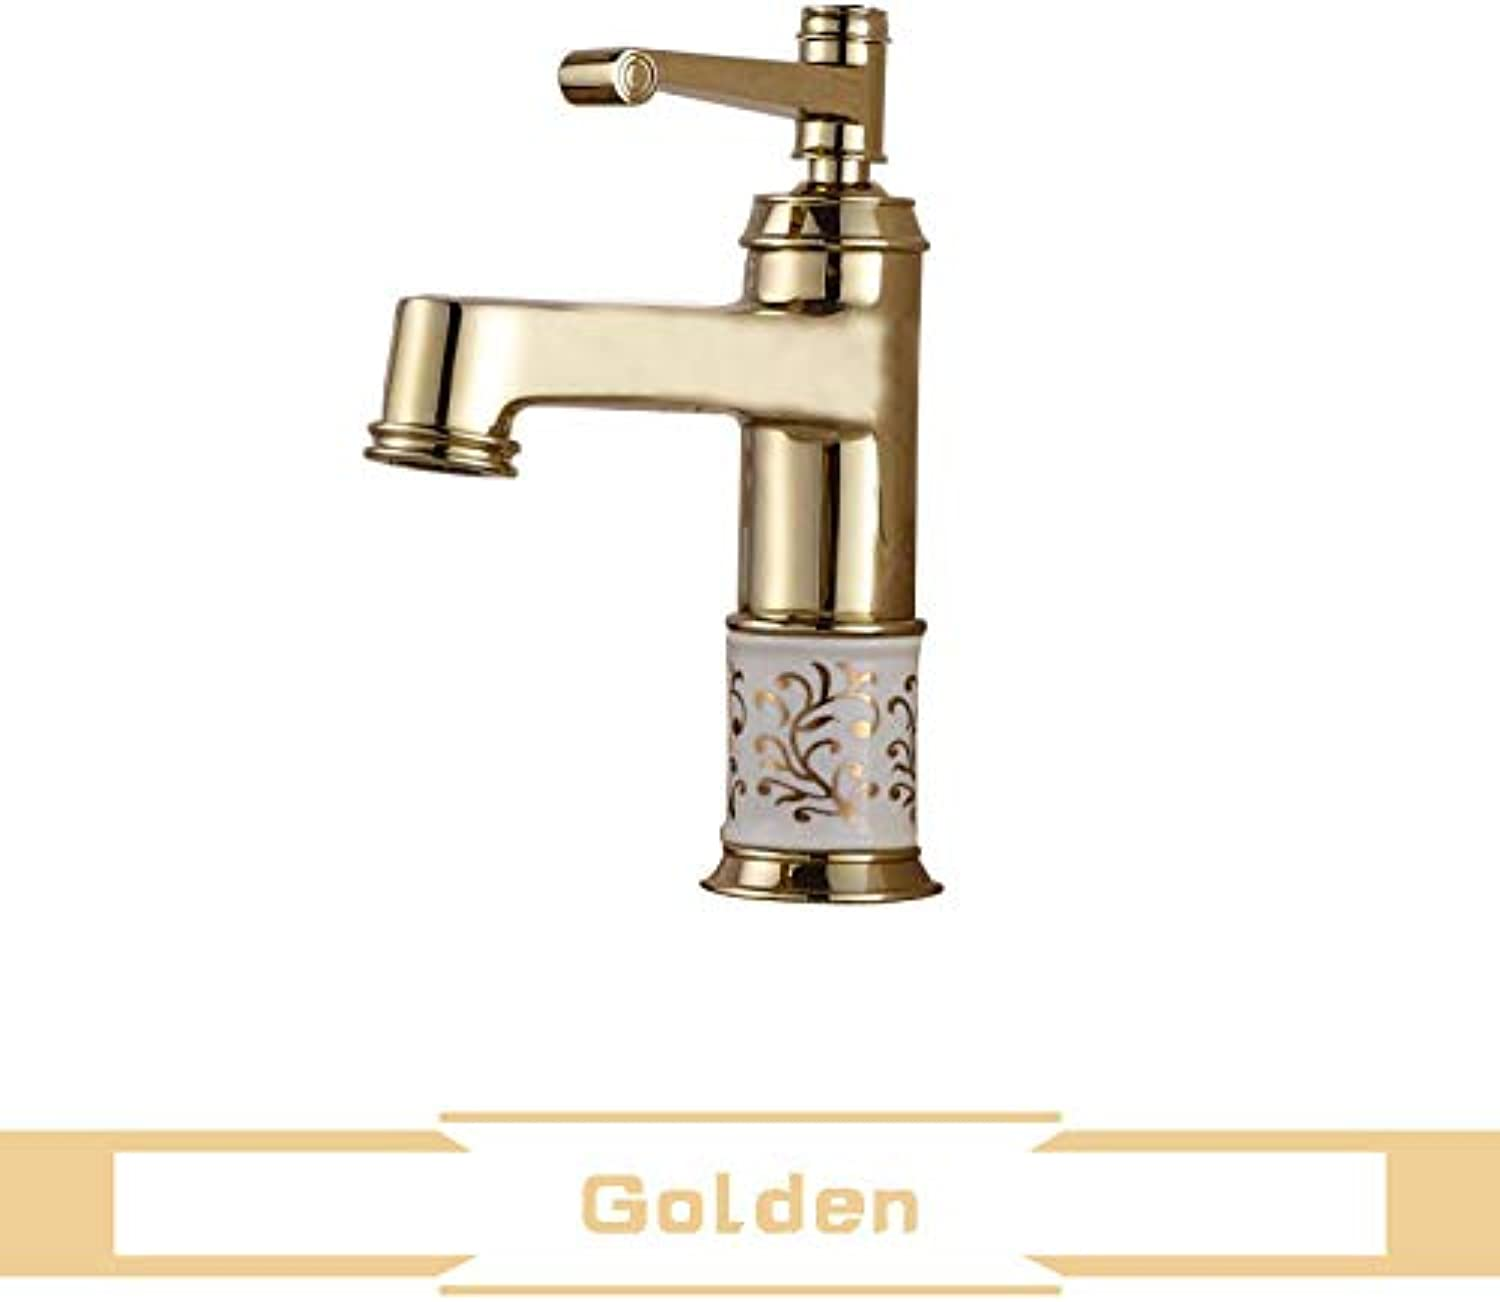 Avety Ceramic Pattern Washing Basin Faucet Brass Single Handle pink golden Bathroom Vanity Sink Mixer Crane Taps B